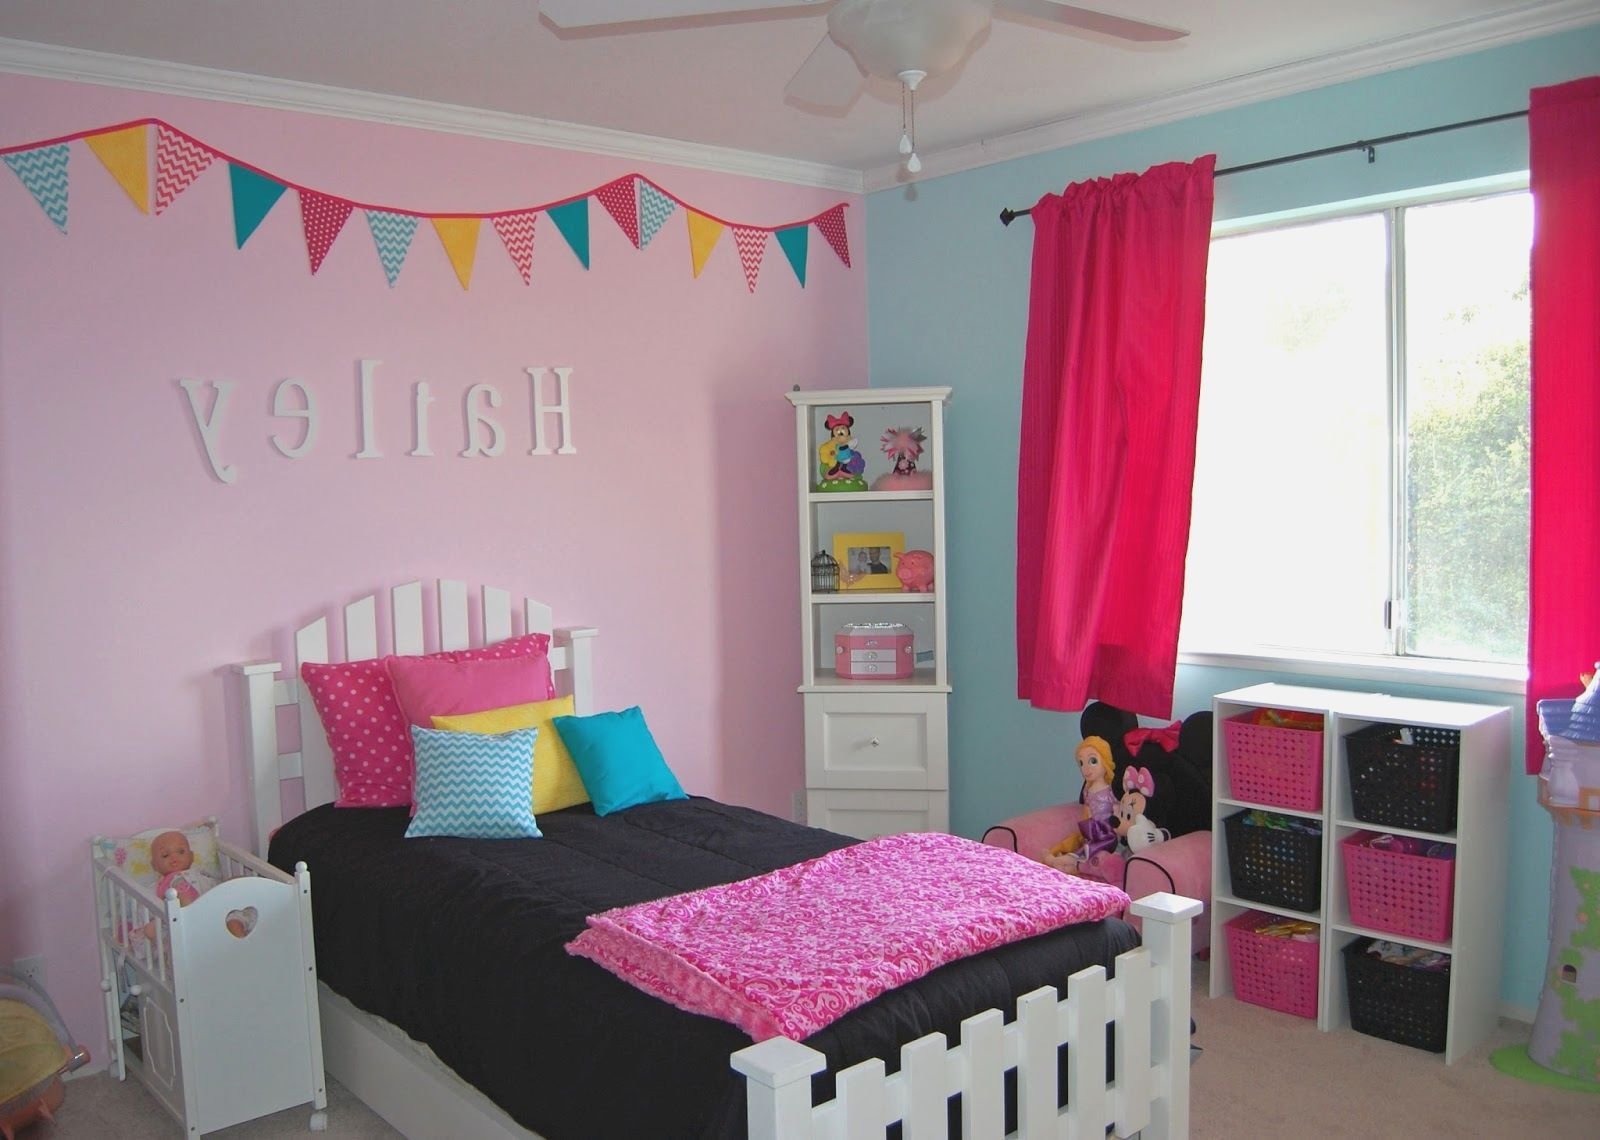 Bedroom ideas for 10 yr old girl more picture bedroom for Painting ideas for 4 year olds